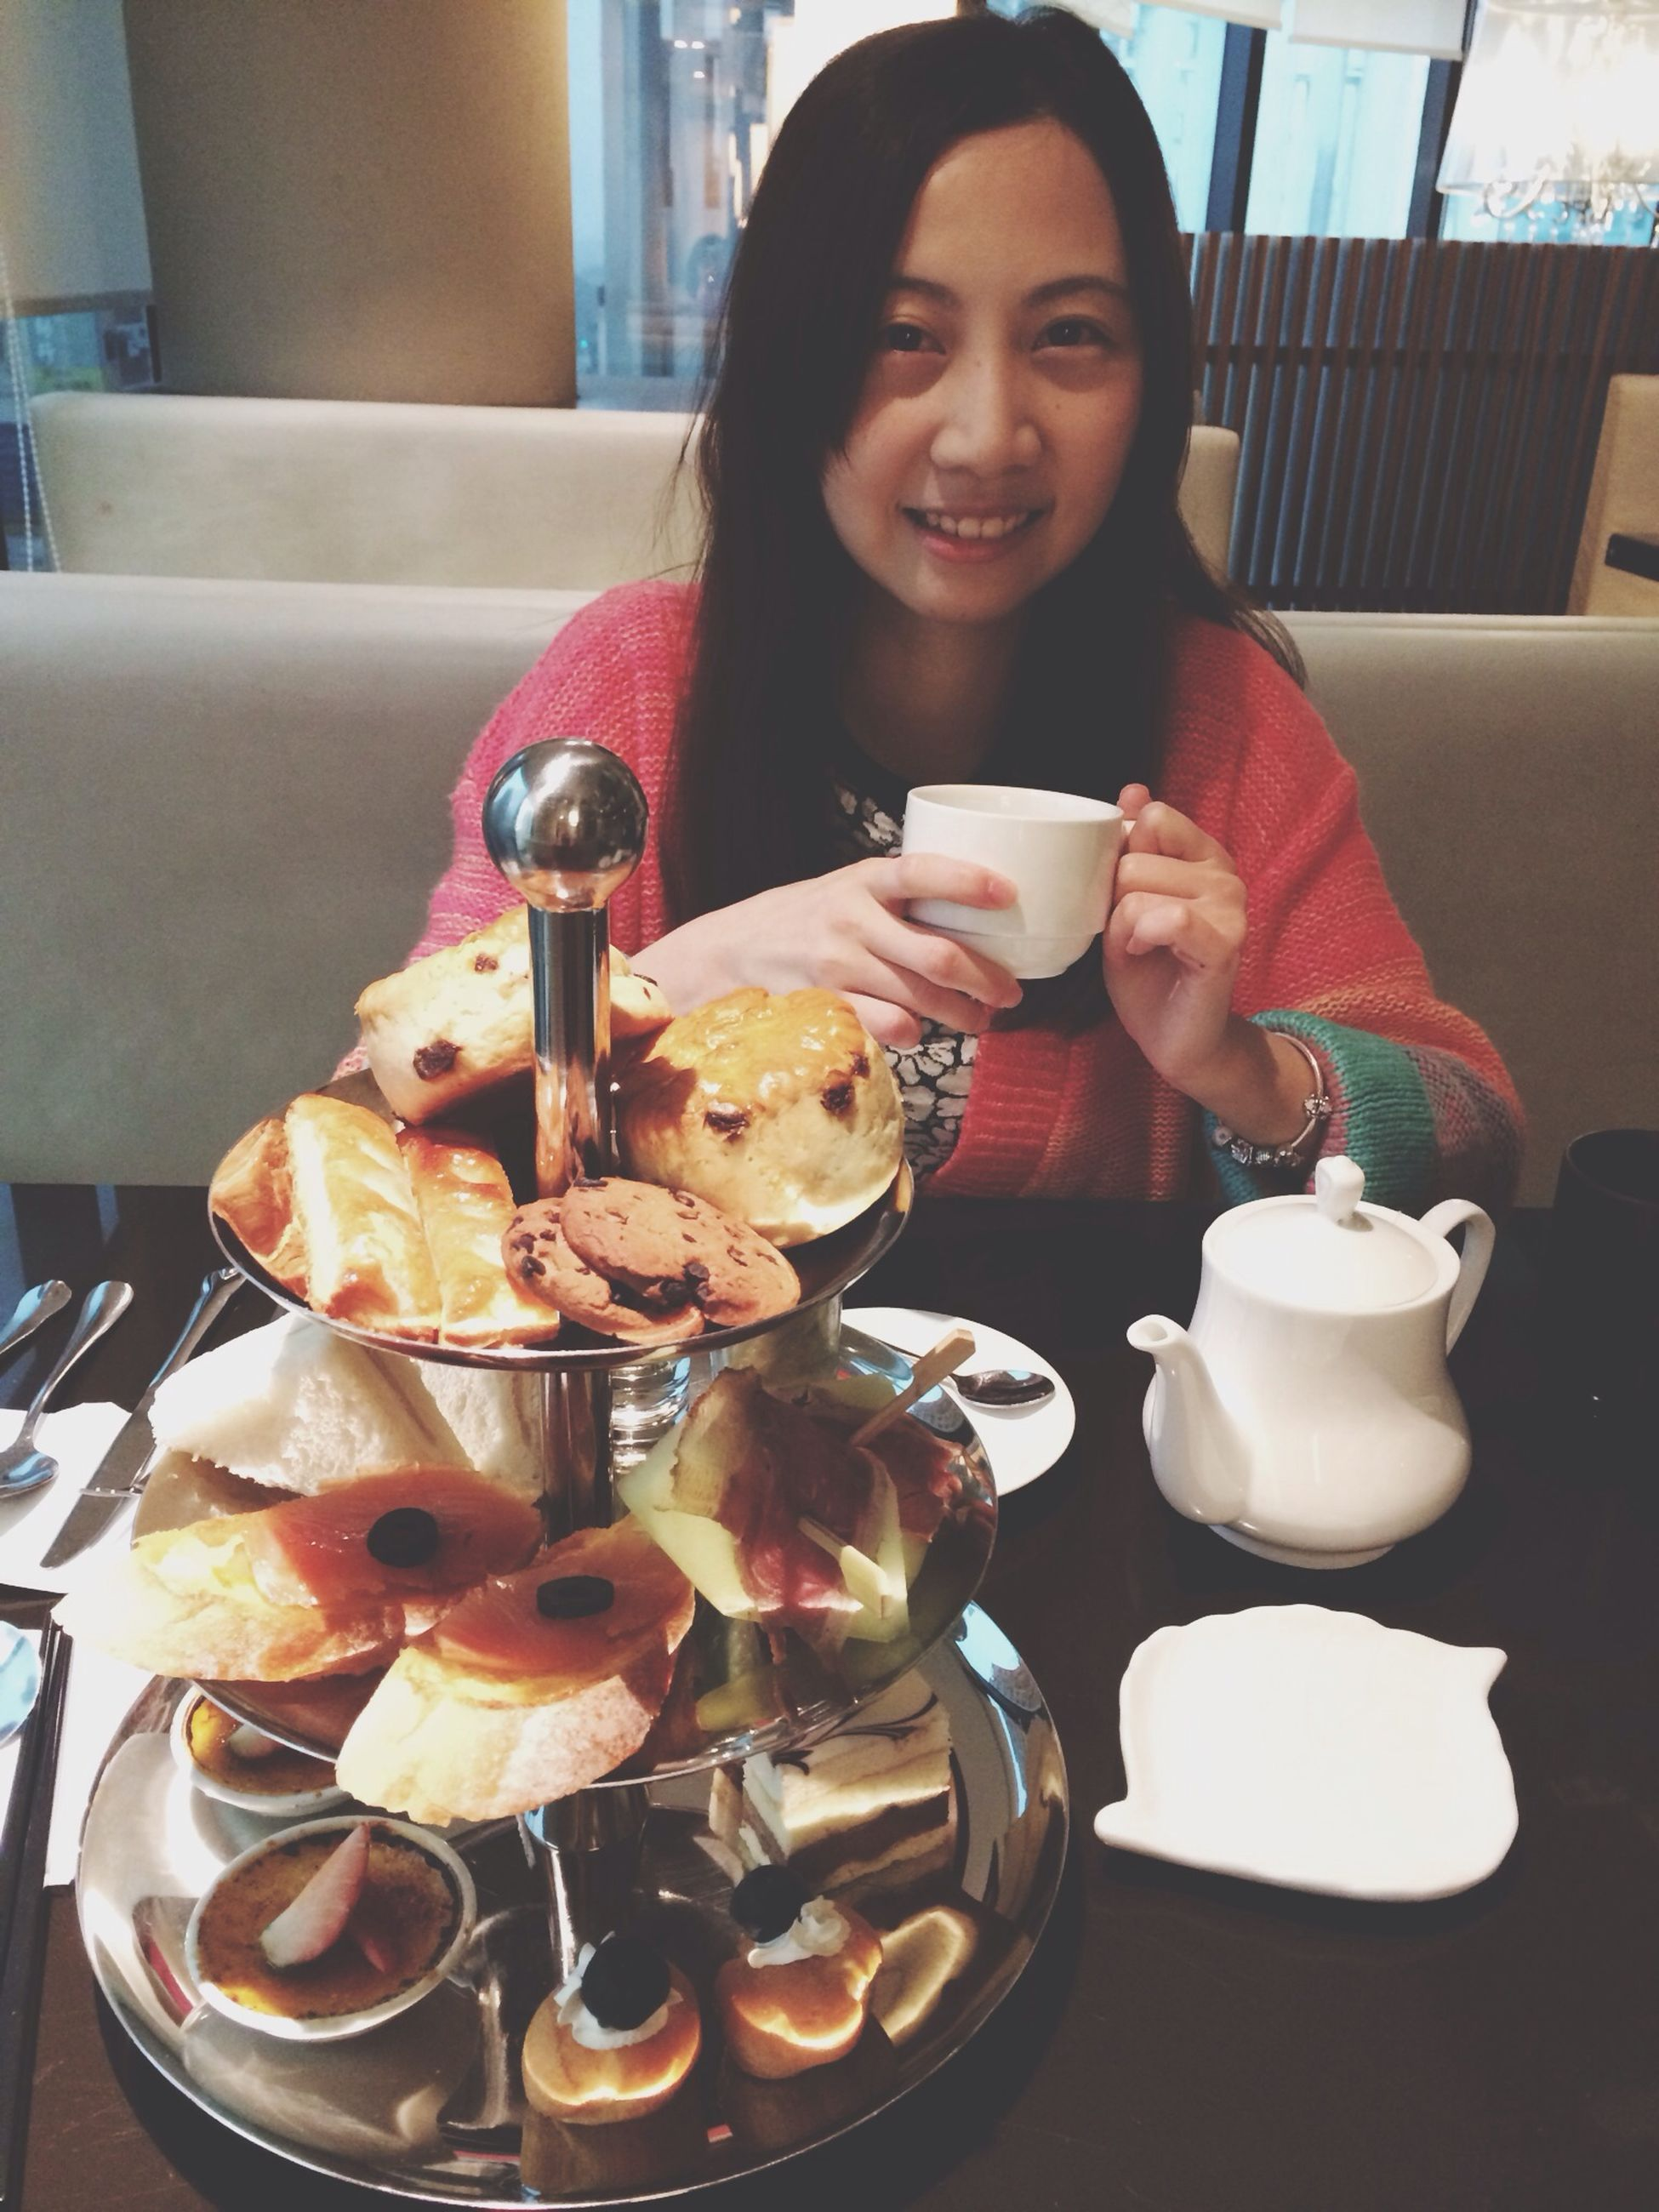 food and drink, indoors, food, freshness, table, ready-to-eat, sweet food, plate, indulgence, lifestyles, dessert, unhealthy eating, sitting, restaurant, leisure activity, drink, person, holding